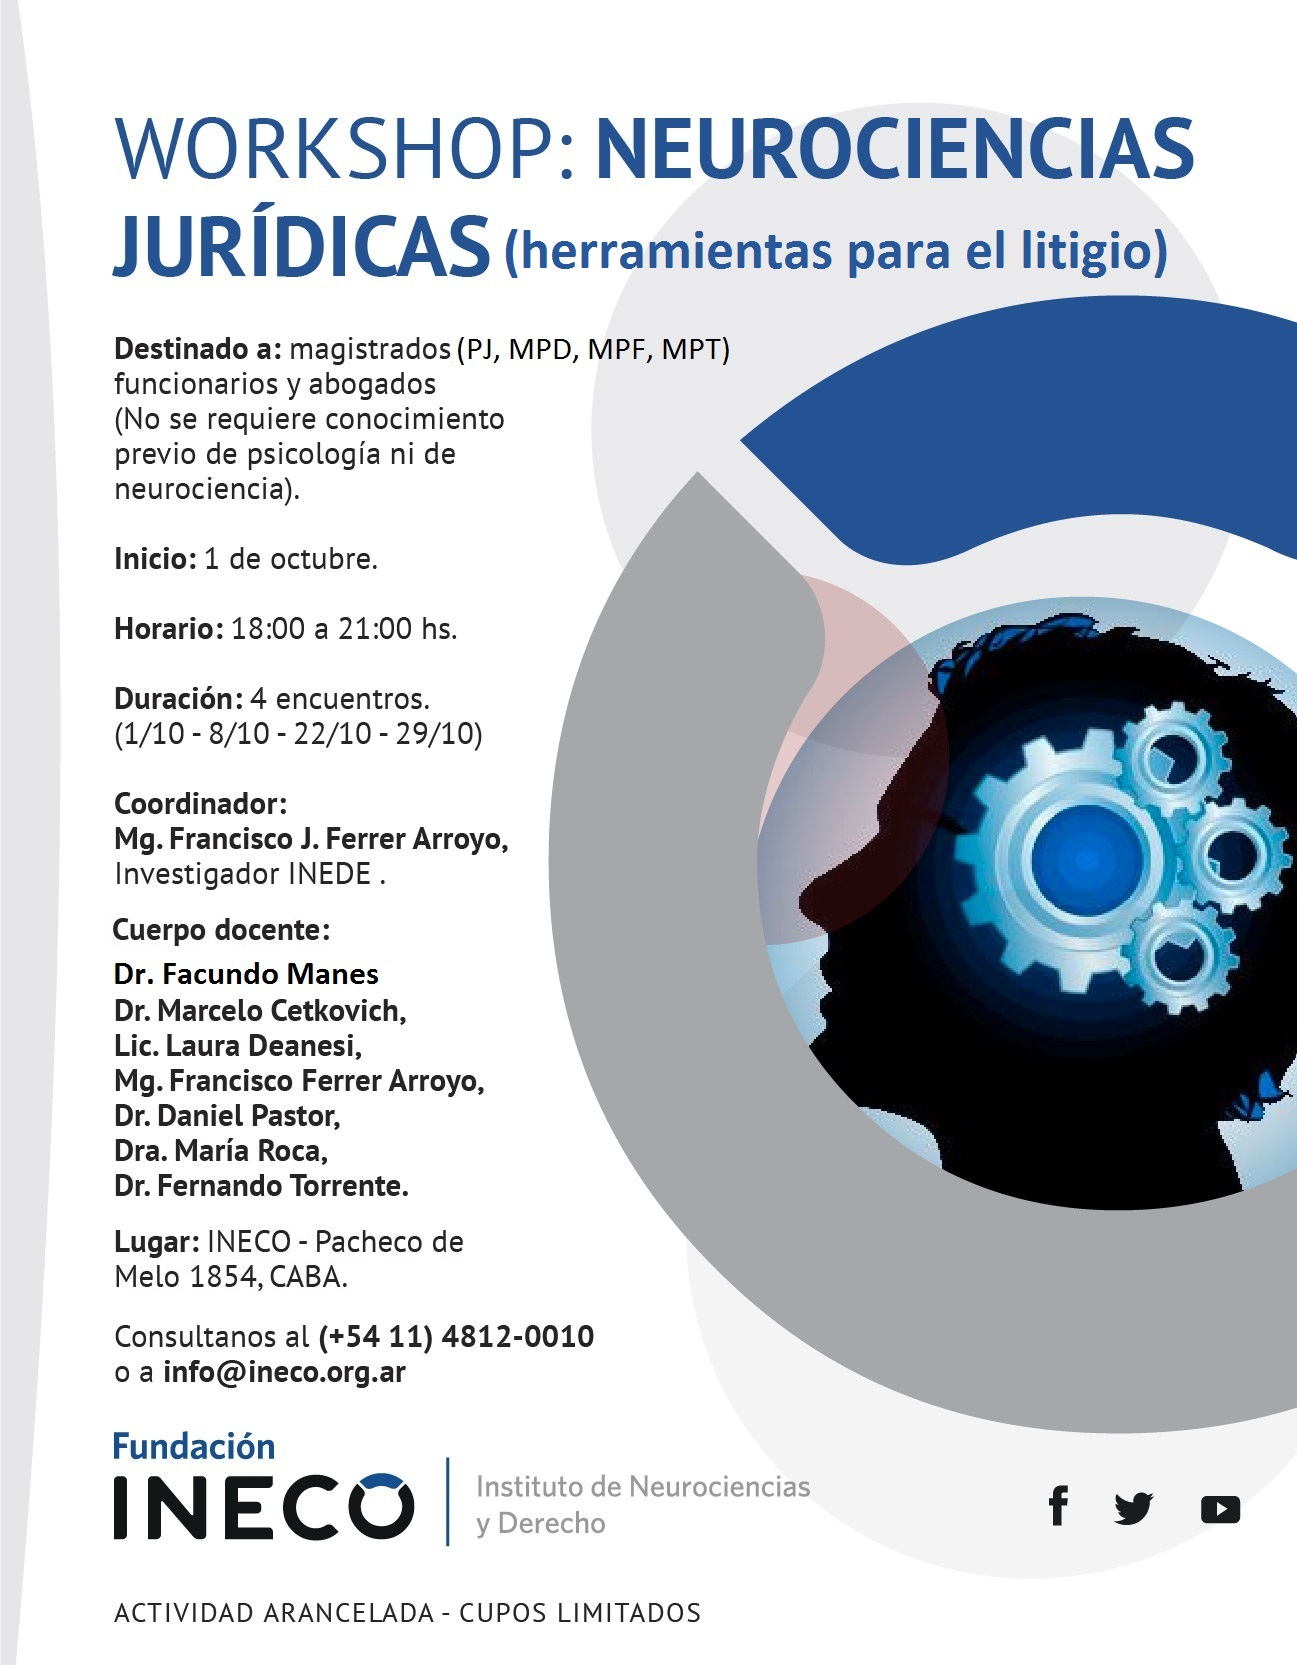 WORKSHOP NEUROCIENCIAS JURIDICAS 01 1